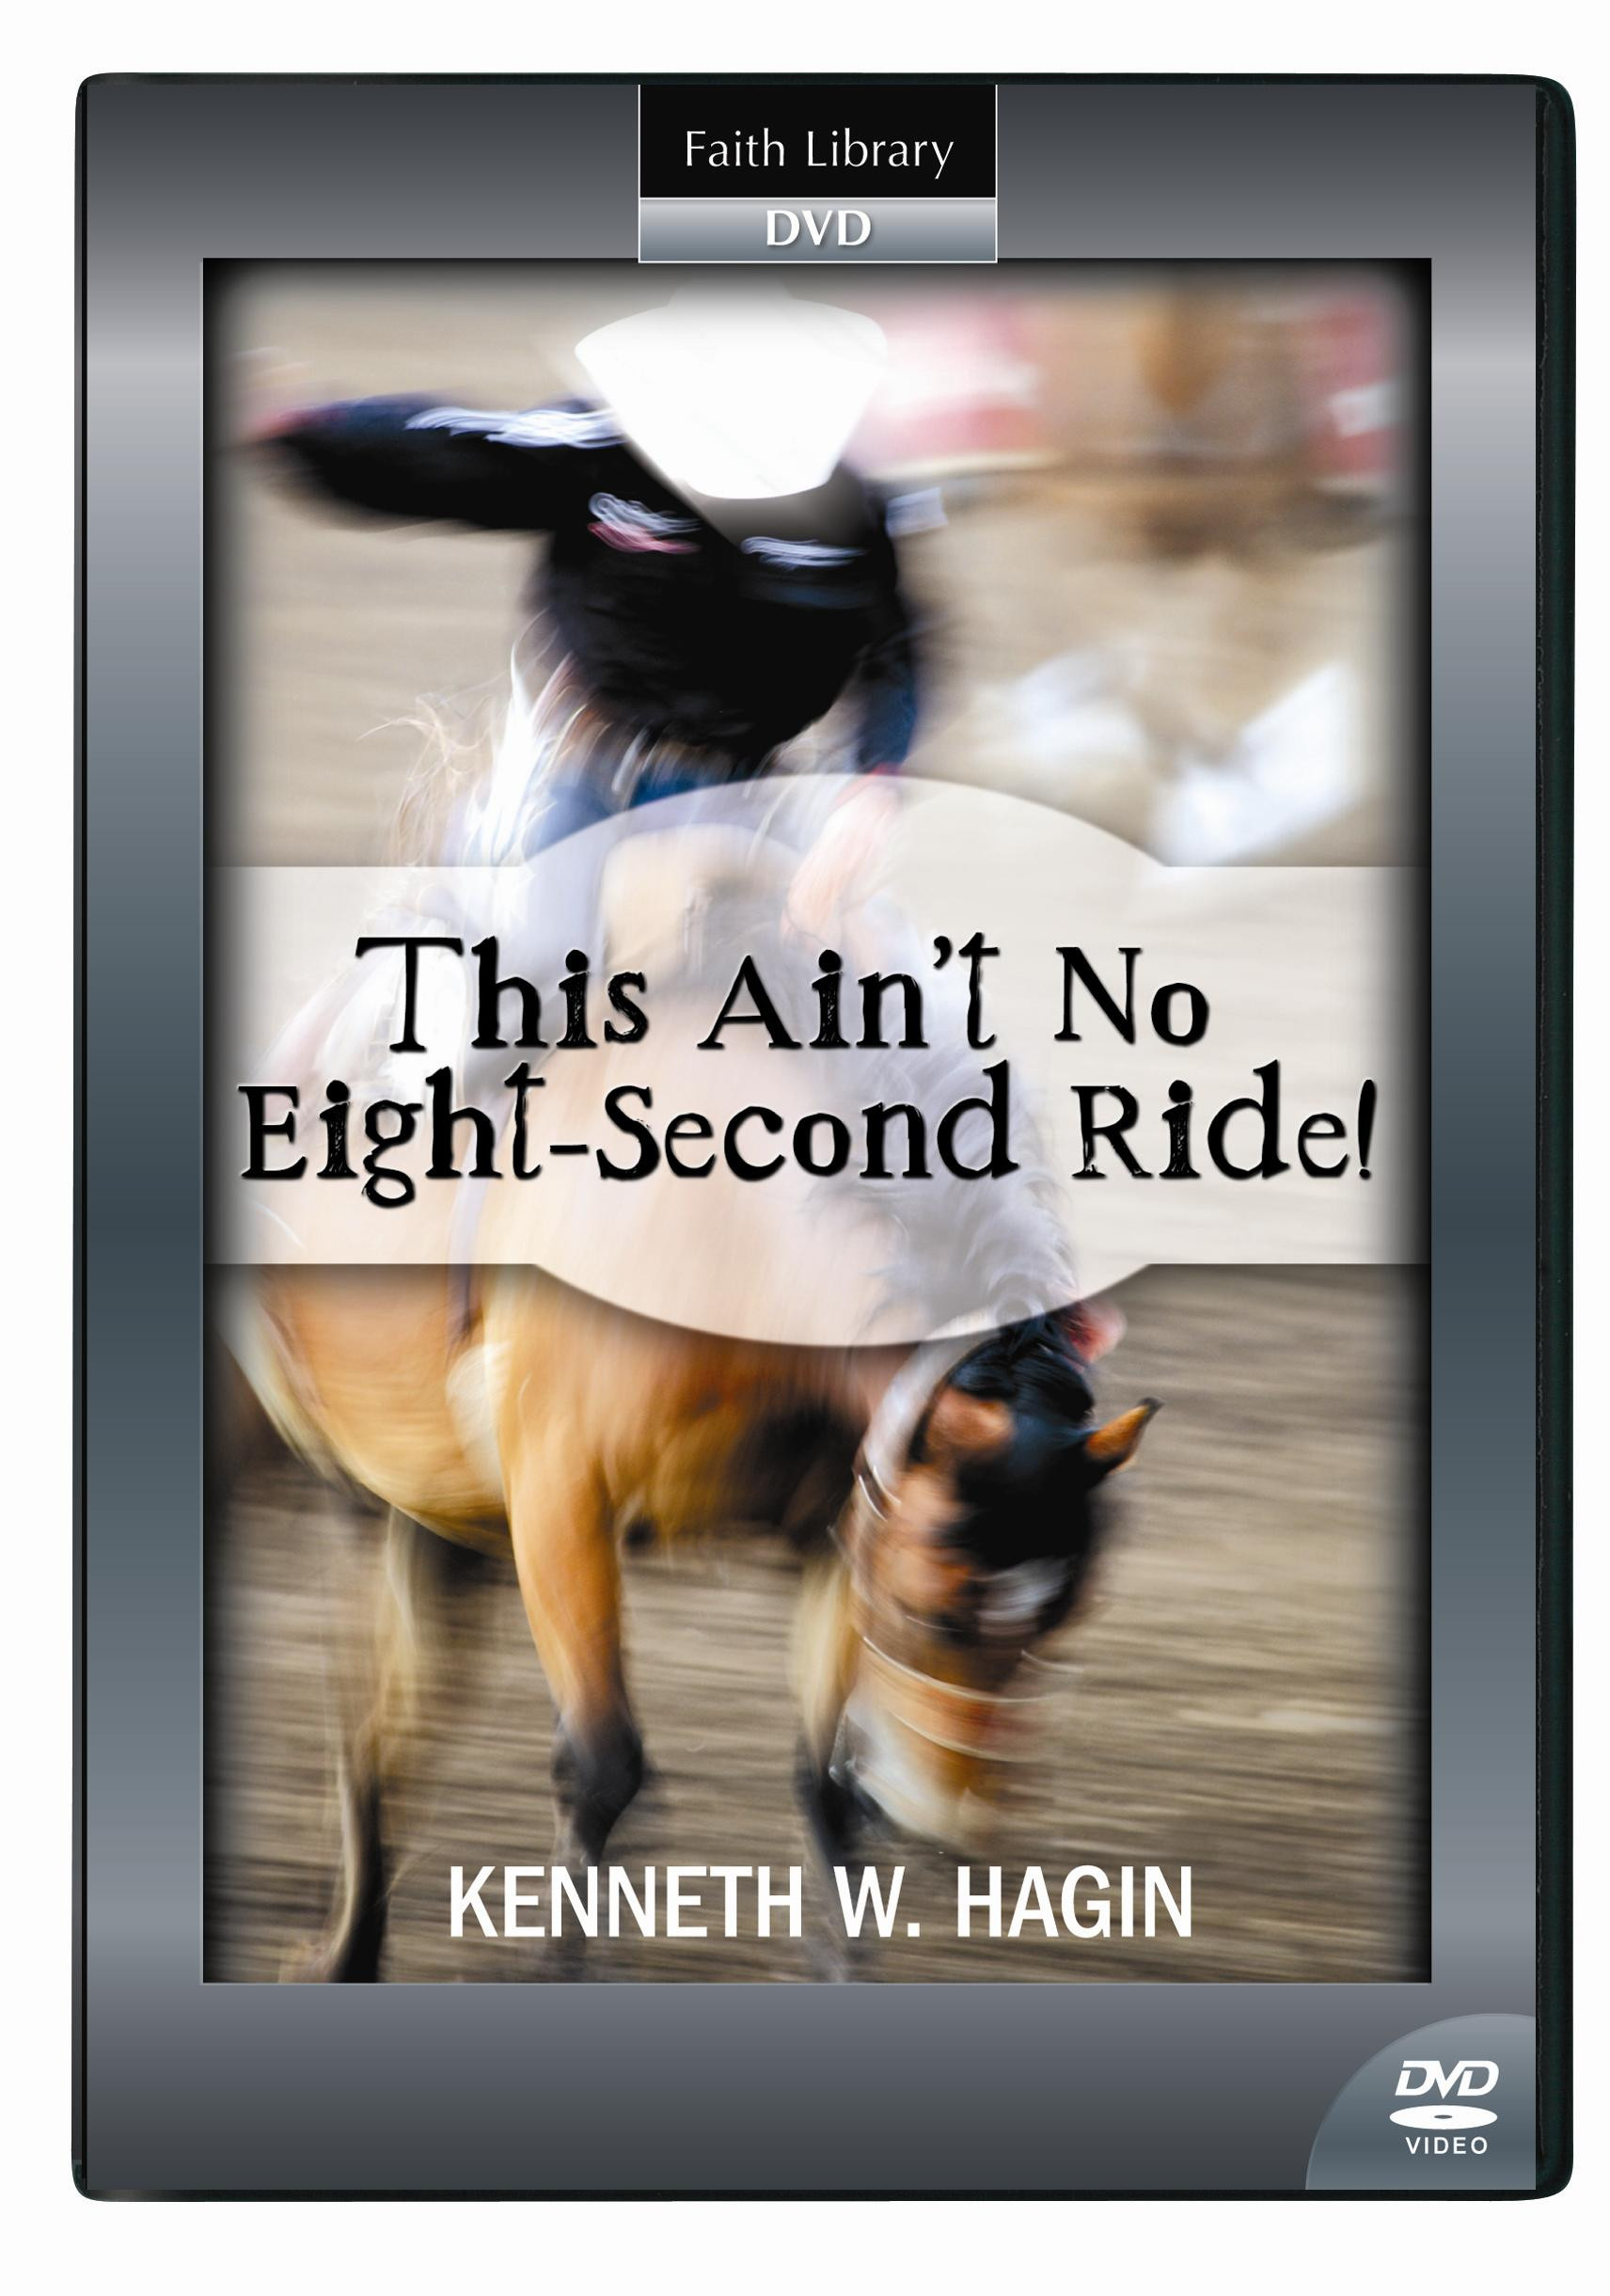 This Ain't No Eight-Second Ride (1 DVD)